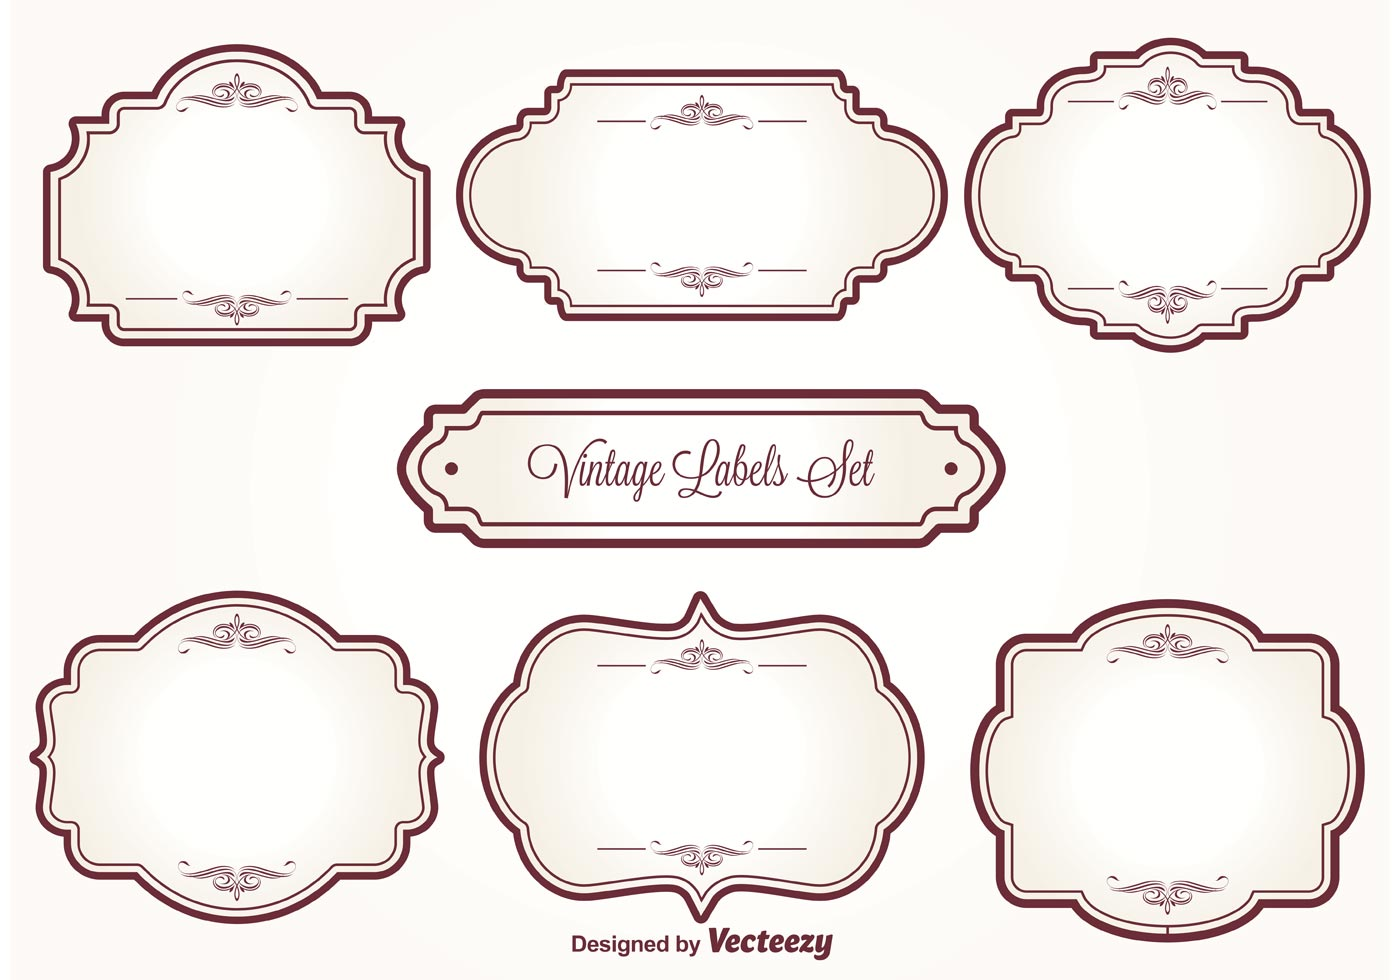 Vintage Label Set - Download Free Vector Art, Stock ...